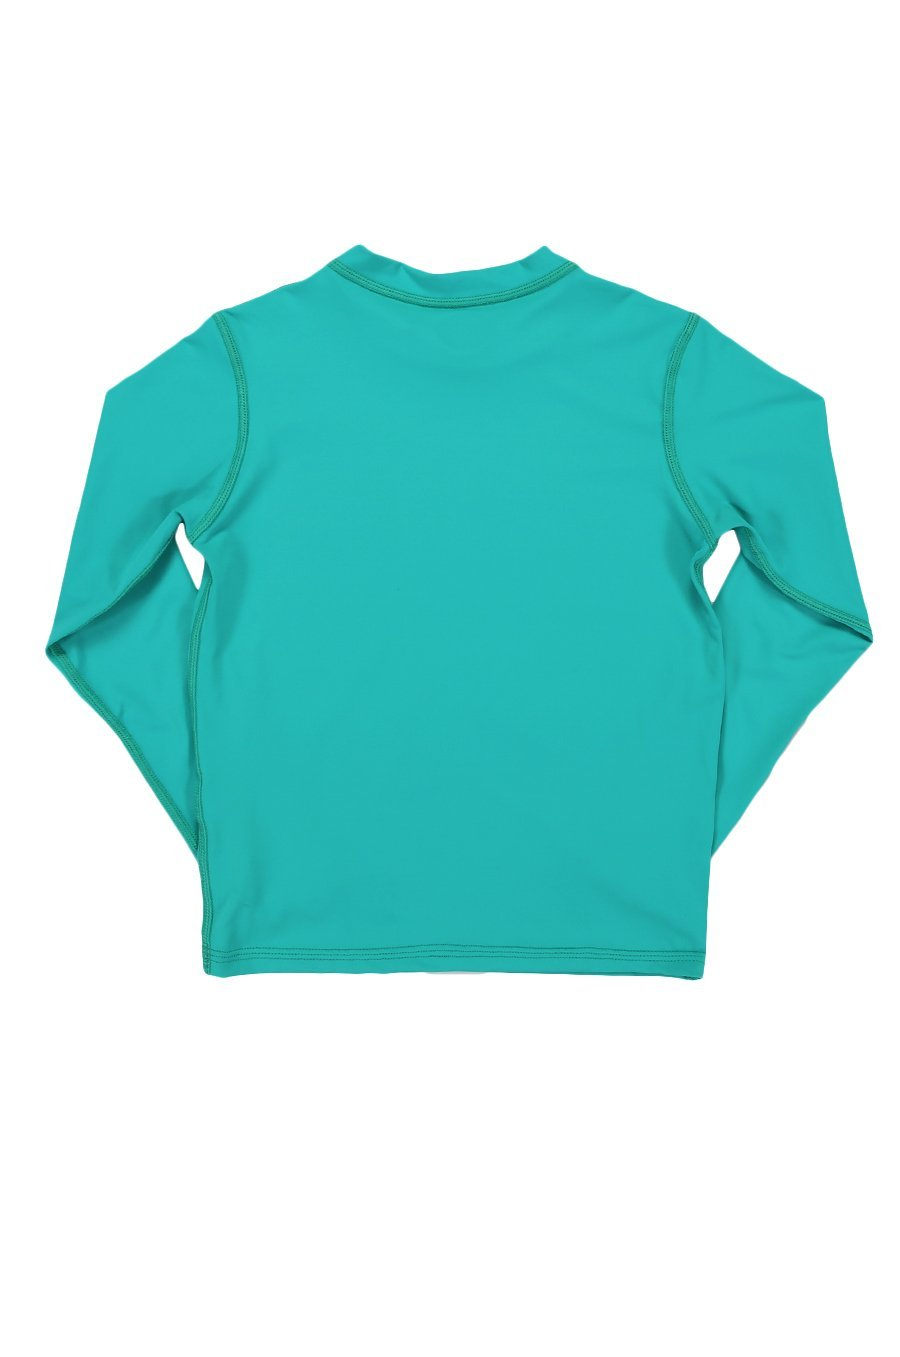 Kids Flower L/S Rashguard - Marine Green - Shore